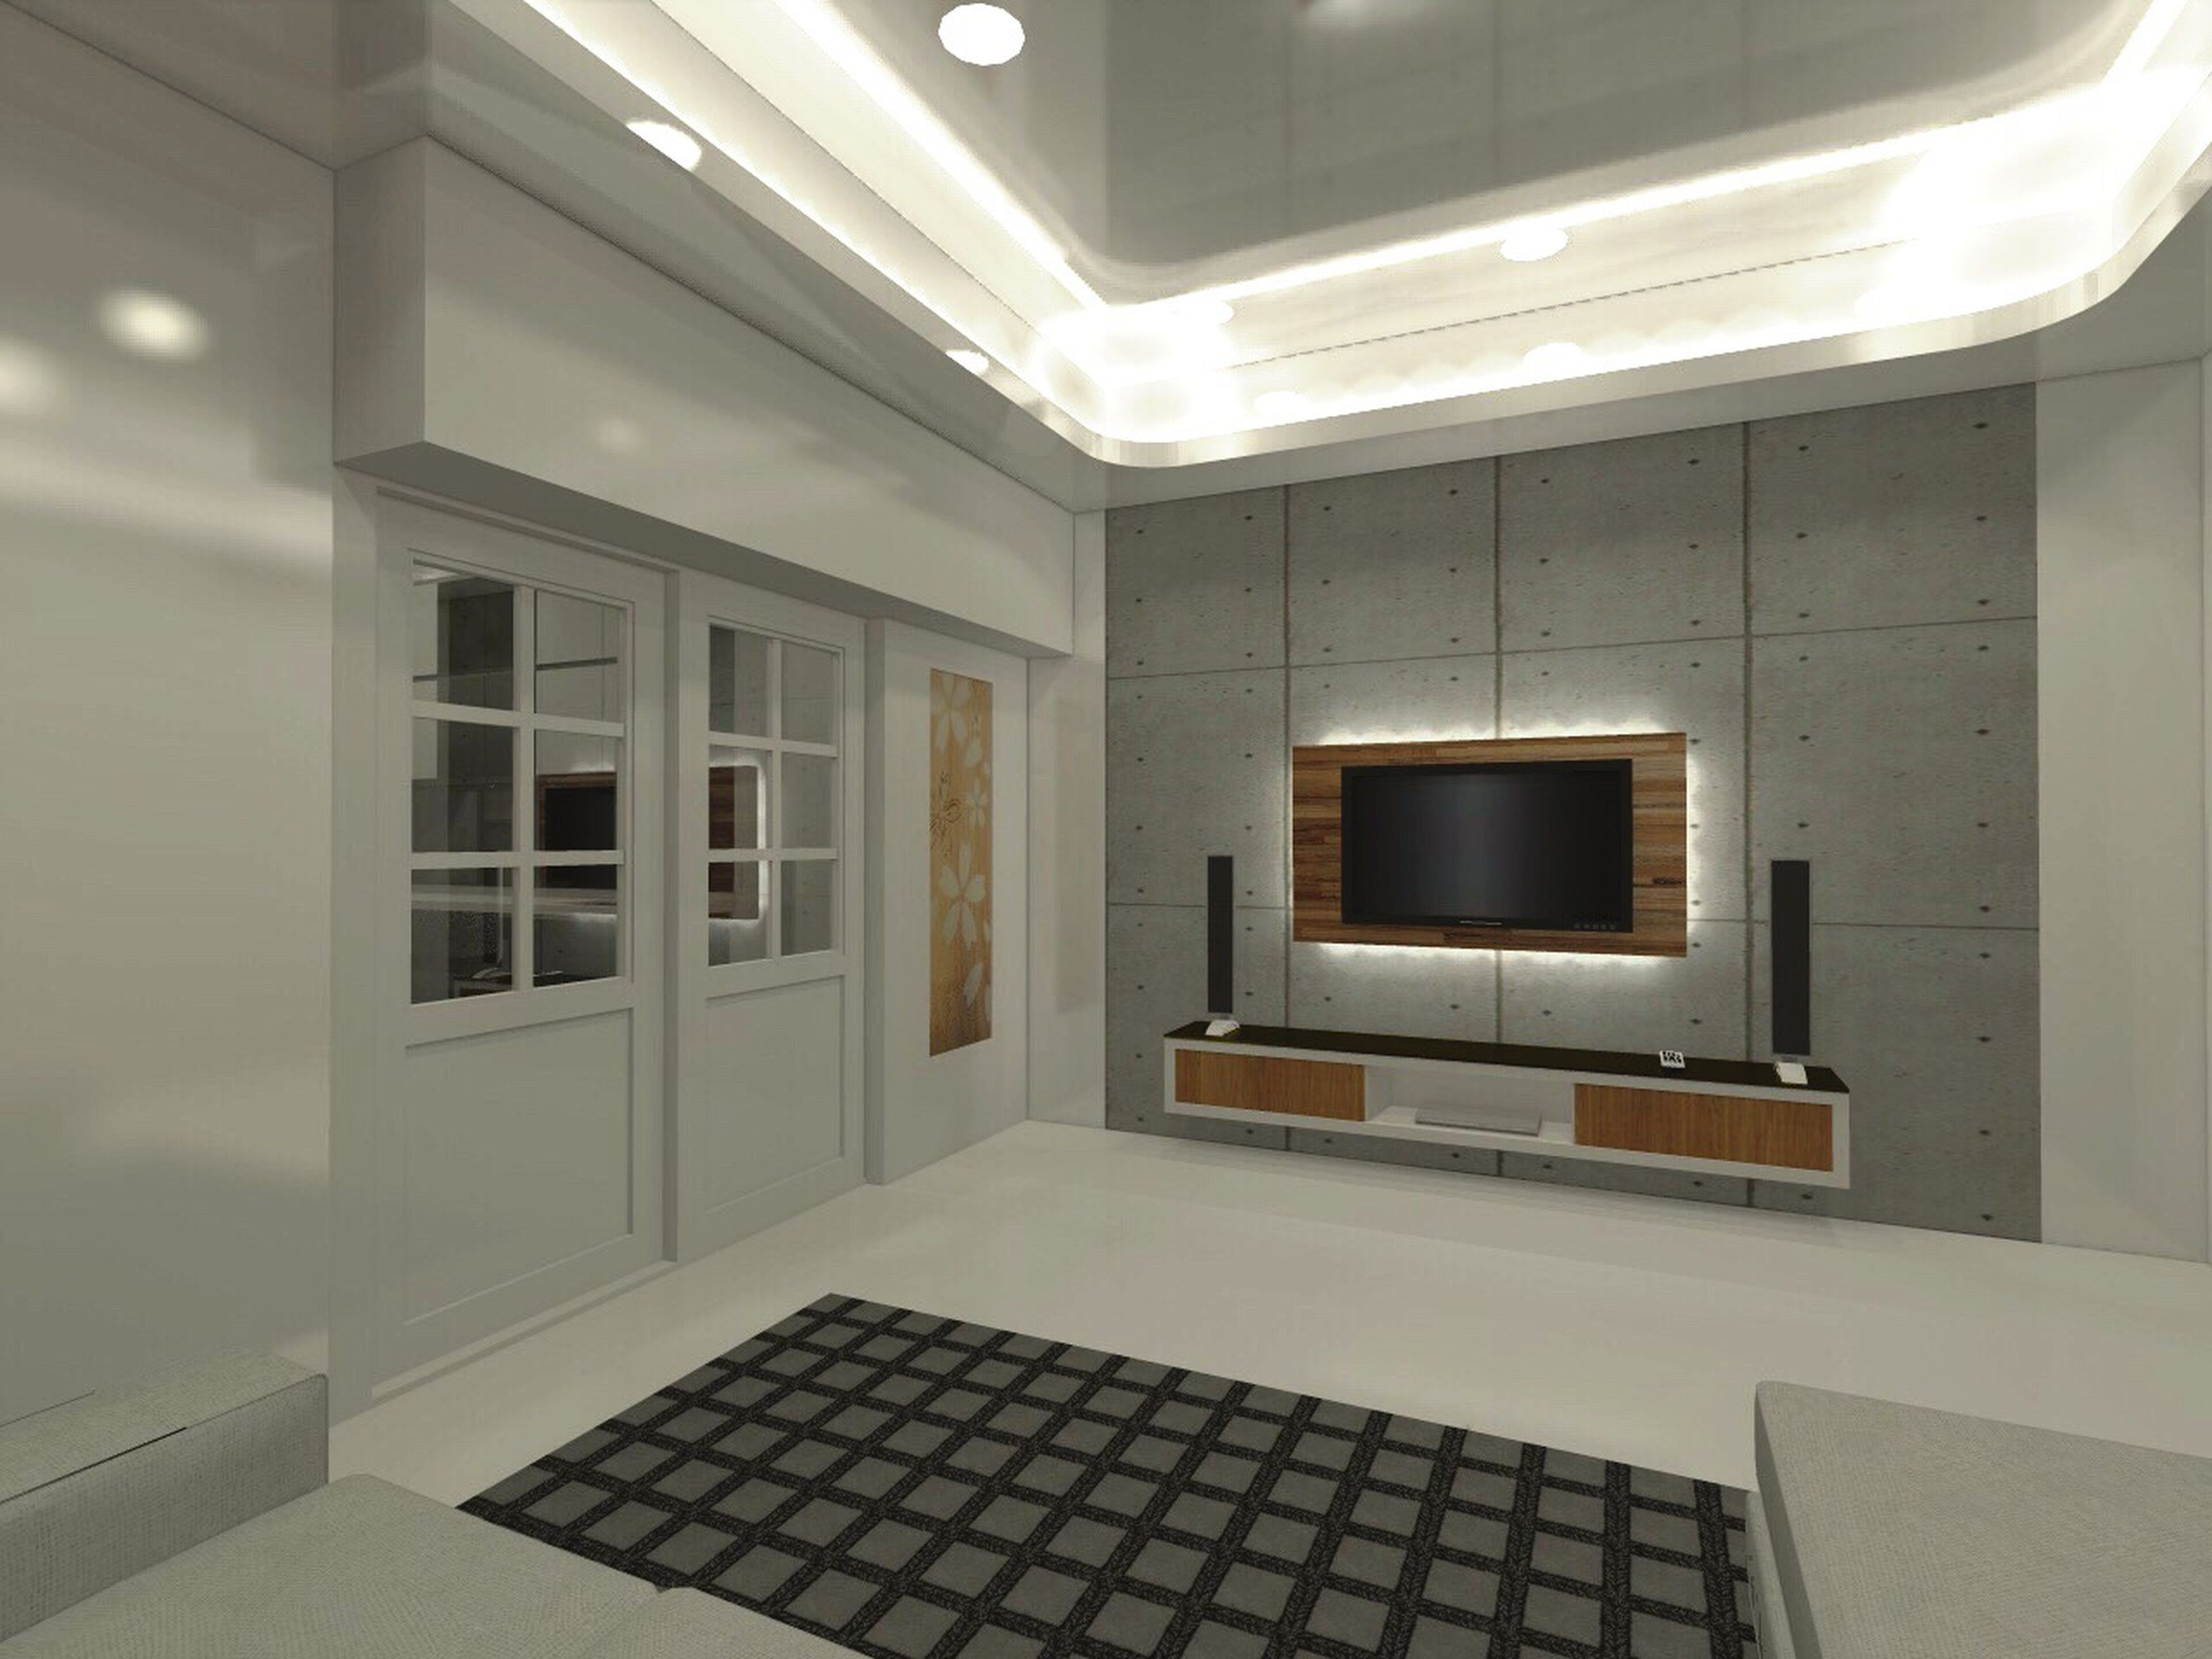 indoors, technology, no people, illuminated, architecture, day, home showcase interior